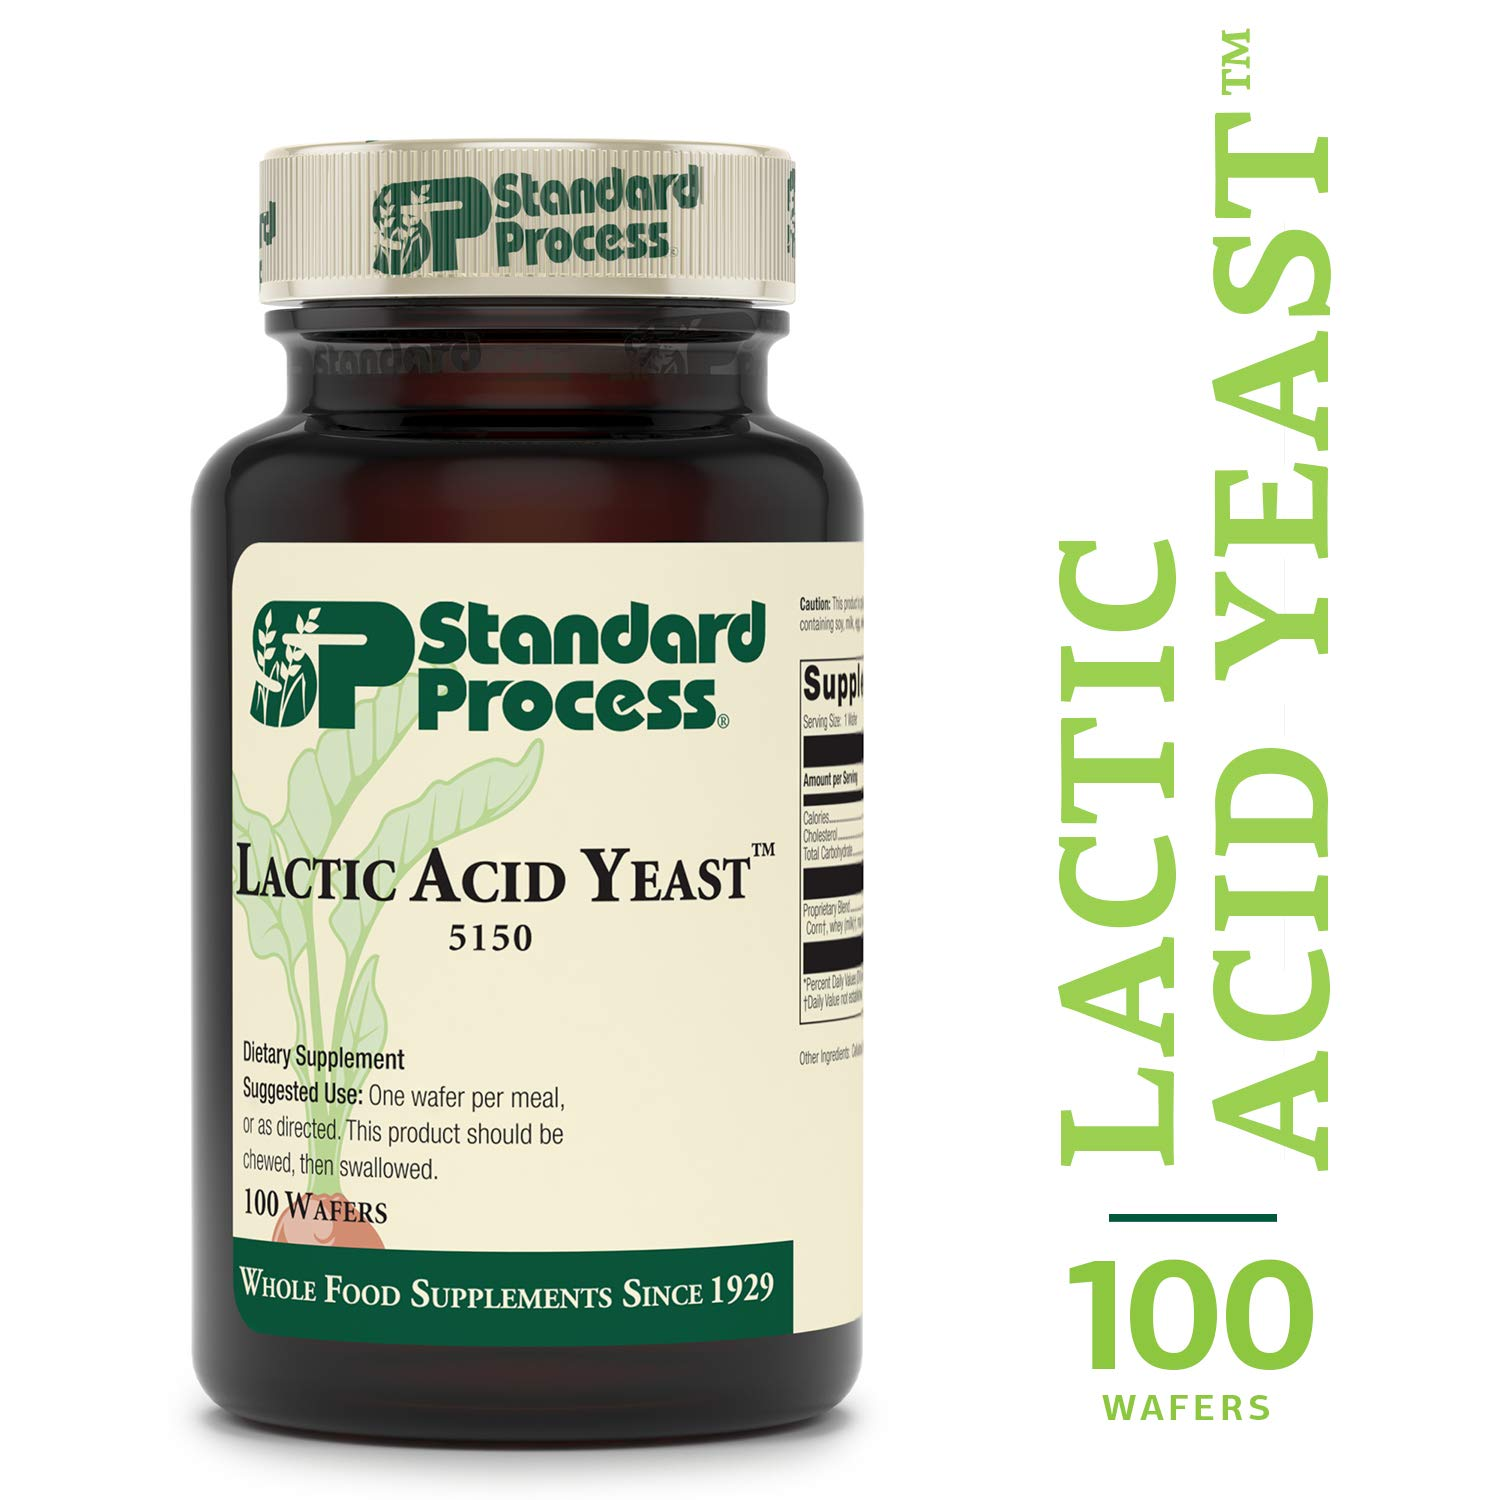 Standard Process - Lactic Acid Yeast - Supports Healthy Function in The Lower Gastrointestinal (GI) Tract, General Intestinal Health, Vegetarian - 100 Wafers